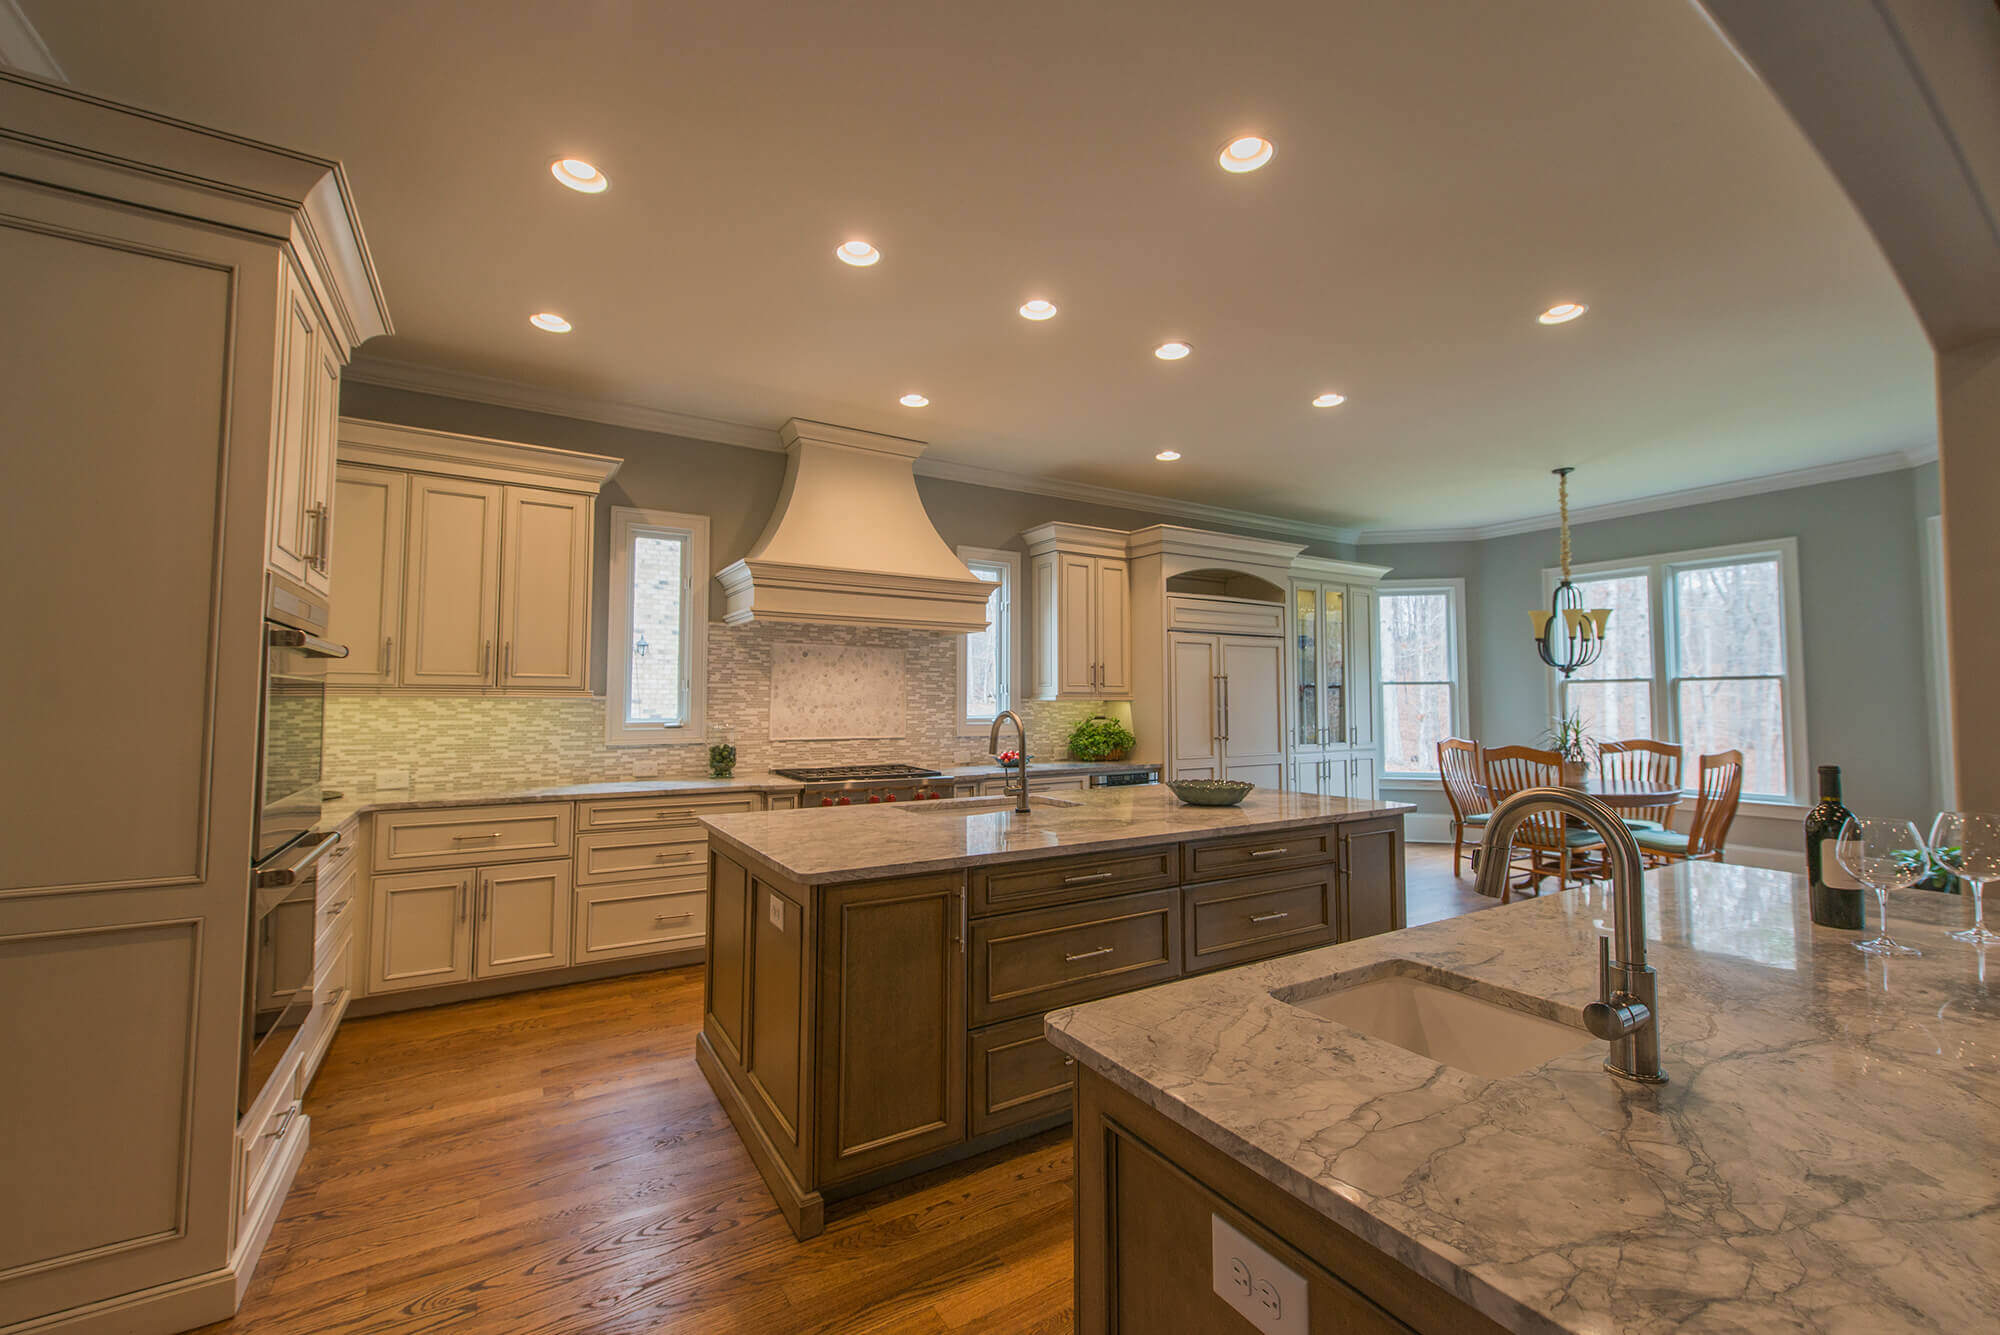 Transitional Kitchen With 2 Islands